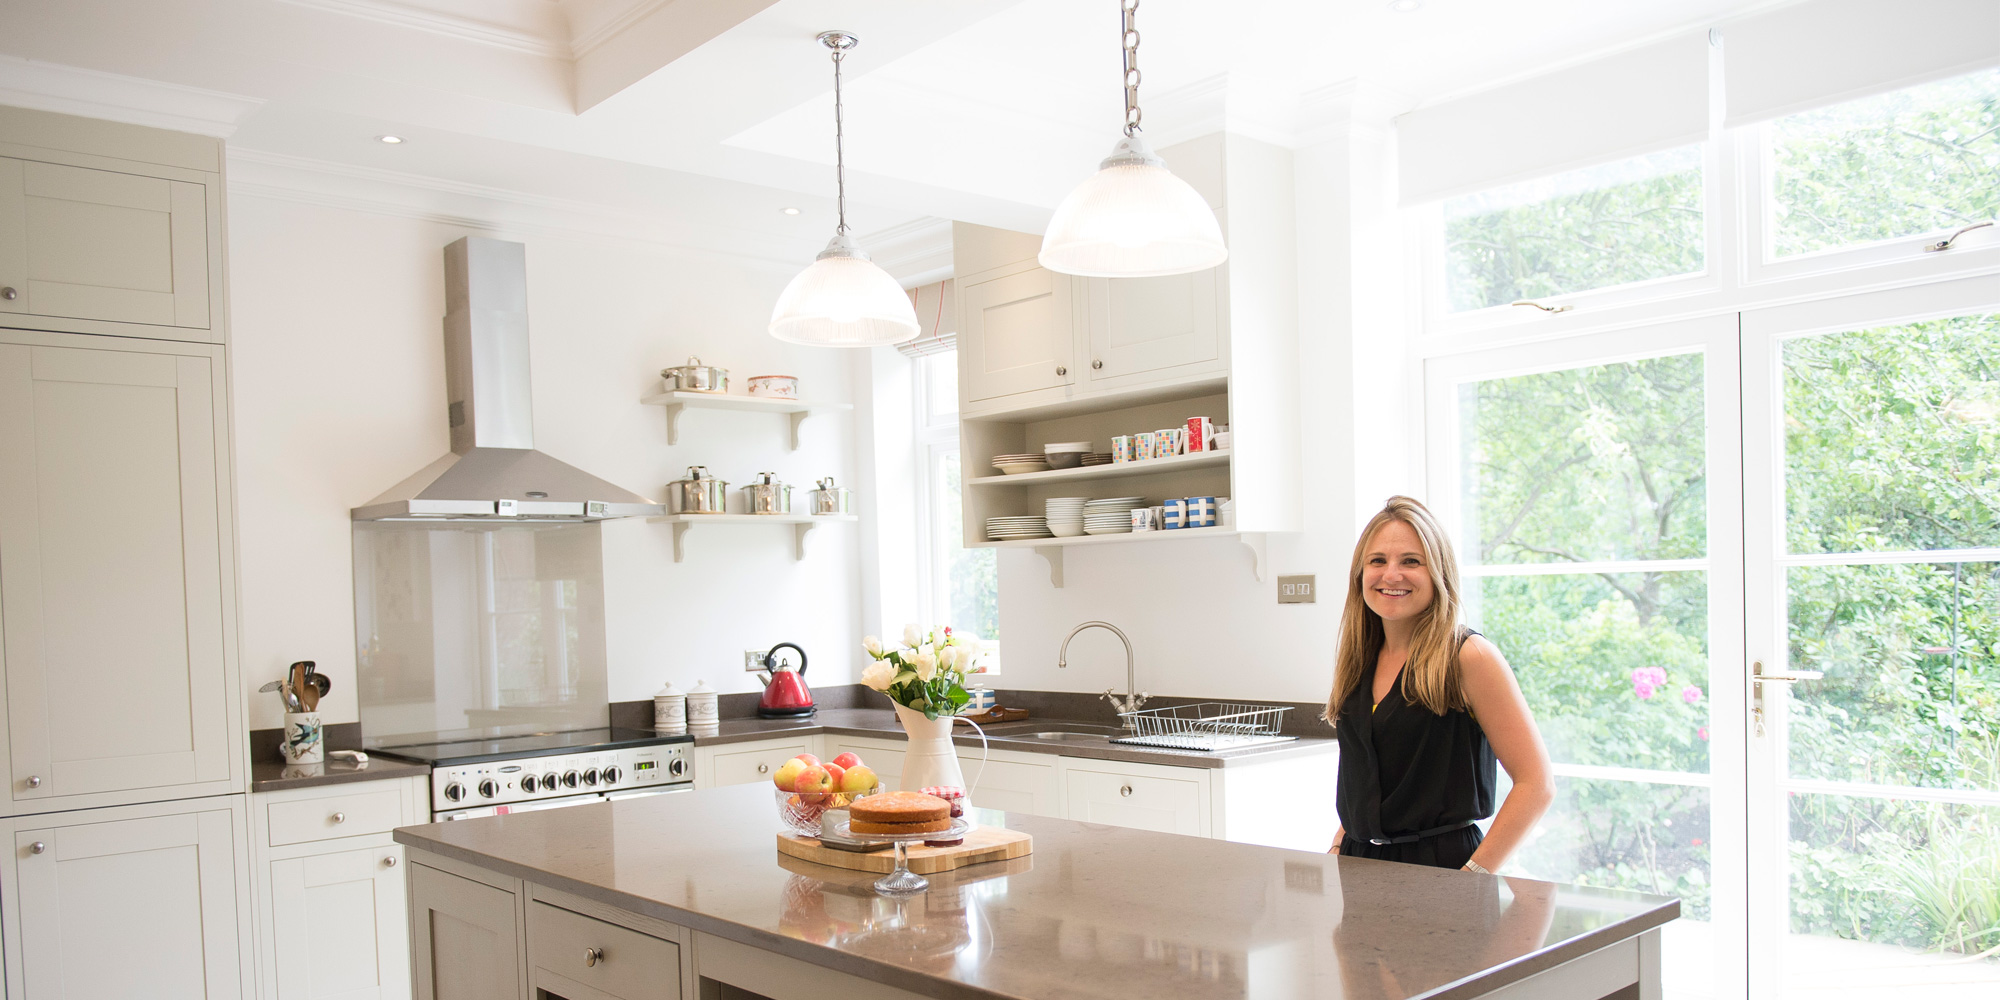 nikki-rees-interior-designer-interior-design-wimbledon-london-surrey-kitchen